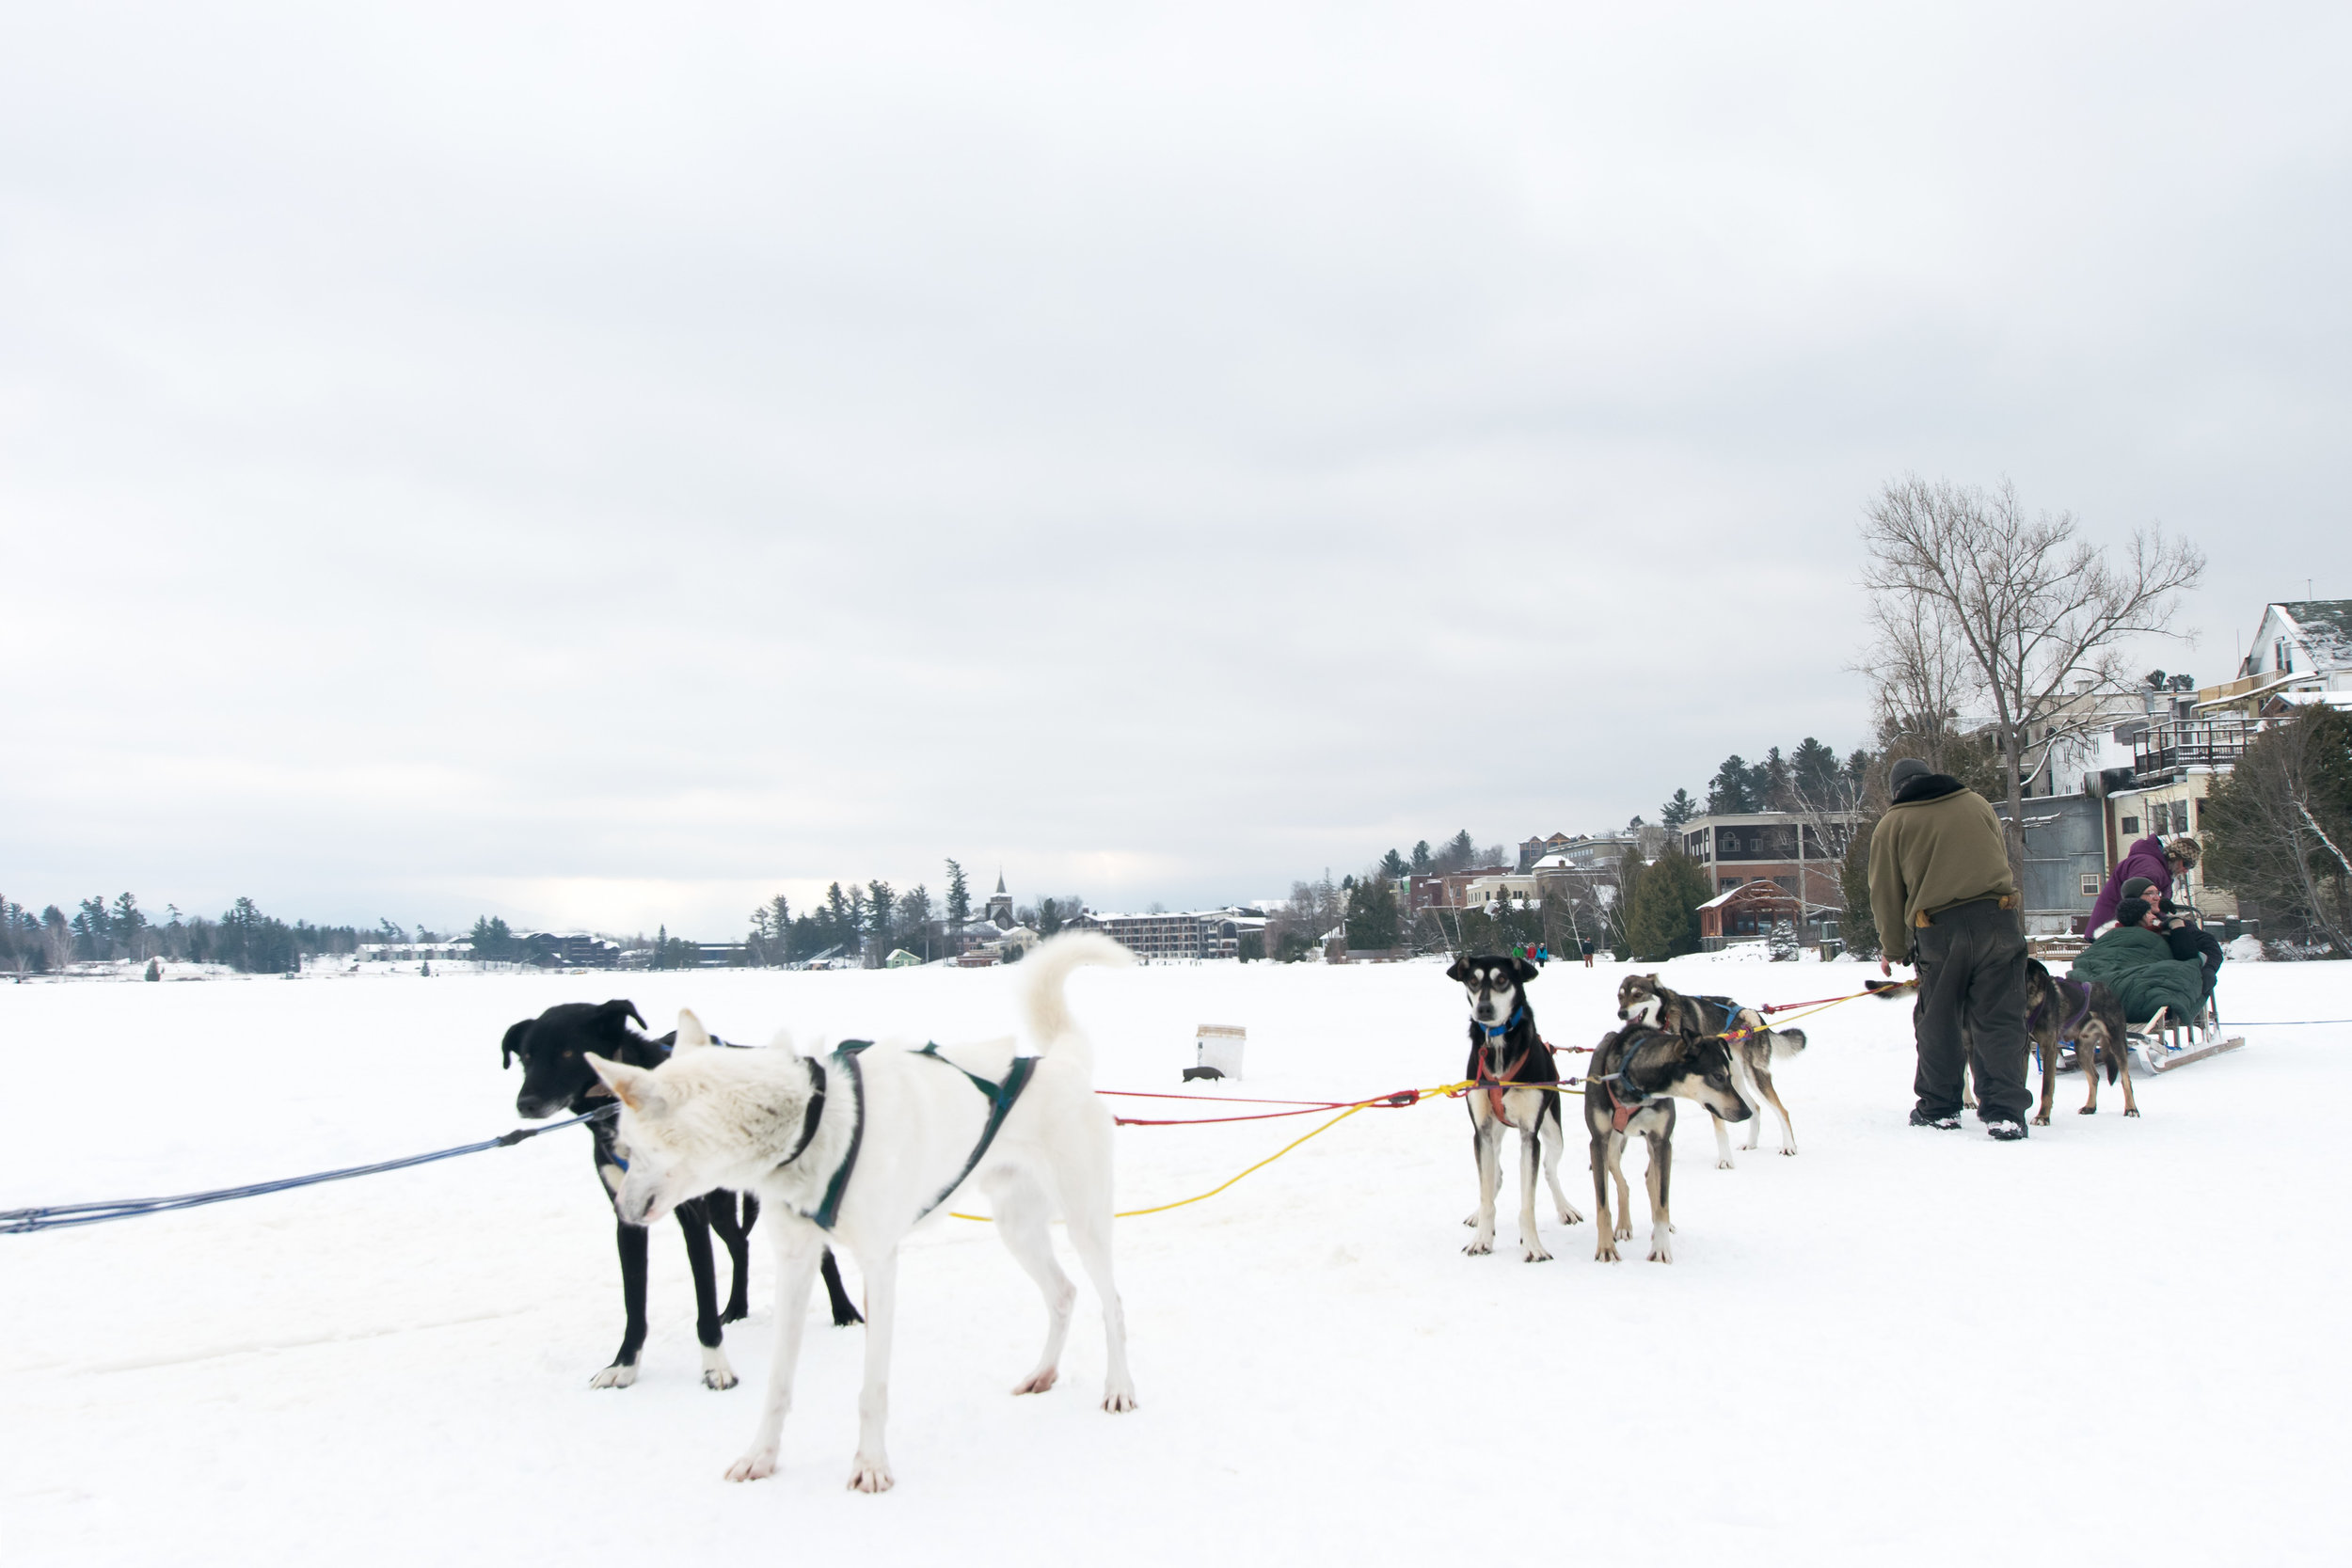 Take a dog sled ride on Mirror Lake when it is frozen over!